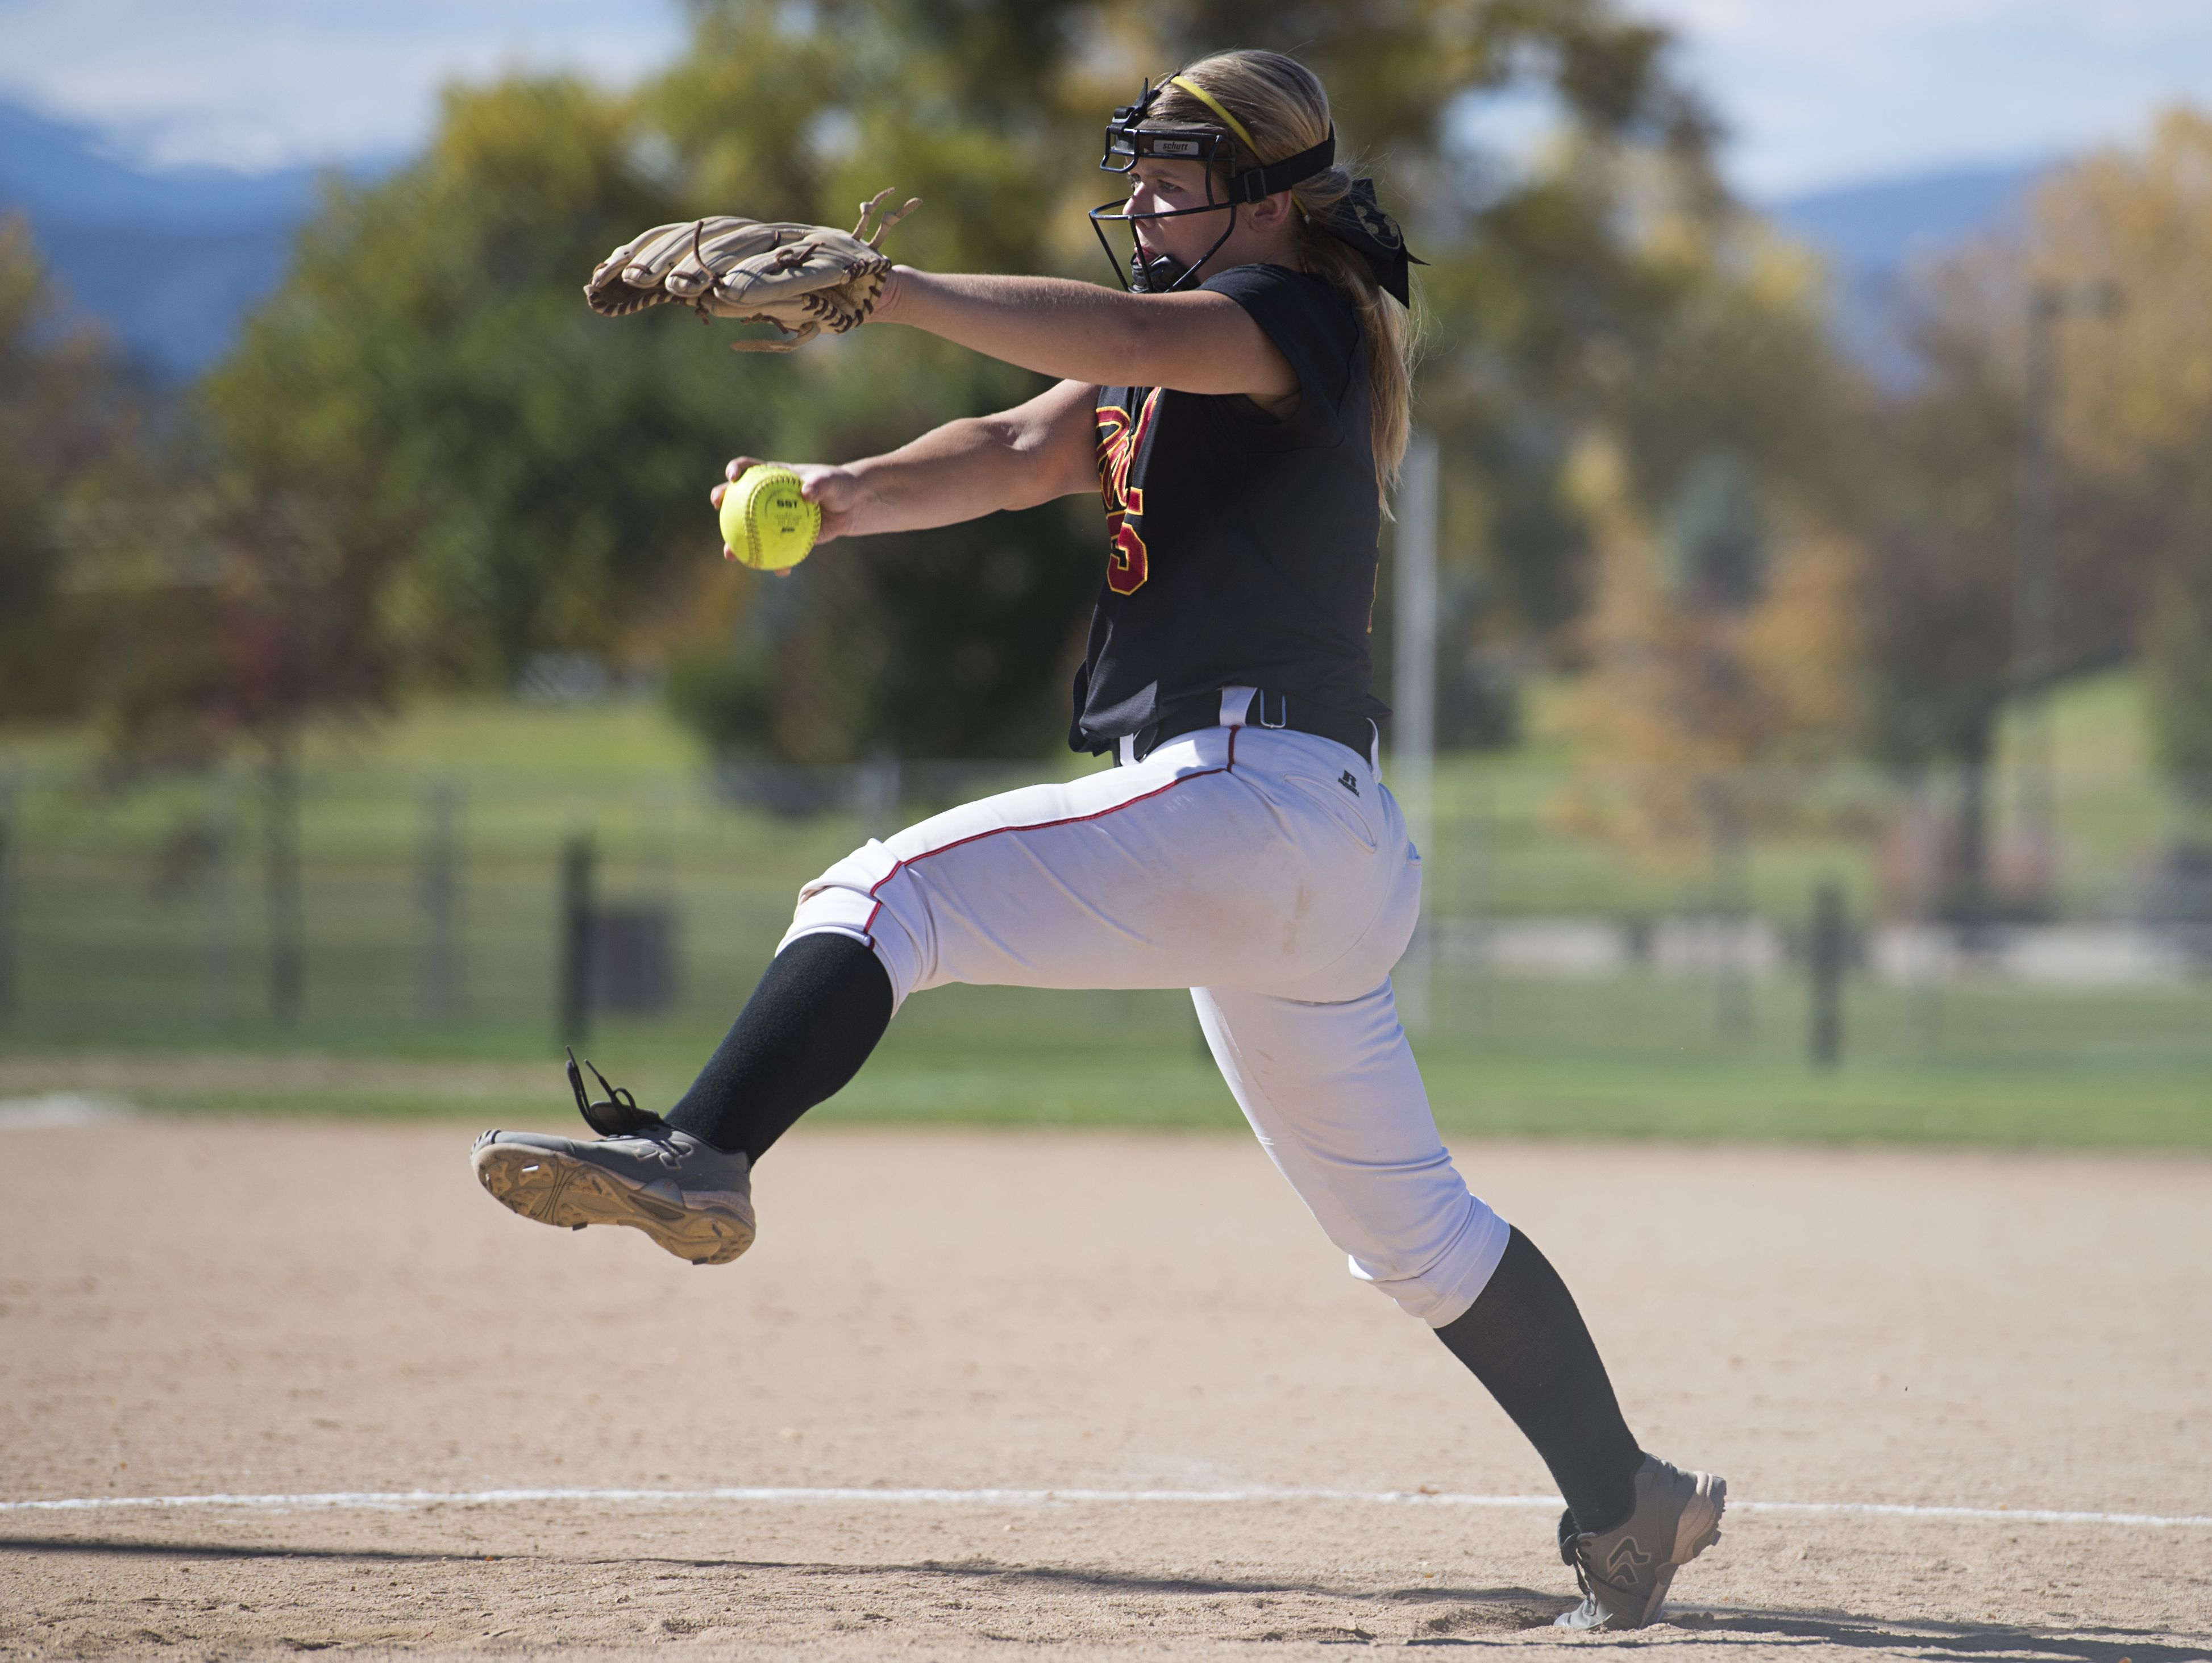 Rocky Mountain pitcher Kelli Schueller delivers the ball to a Loveland batter during a regional championship game at Barnes Sports Complex in Loveland Saturday, October 15, 2016.